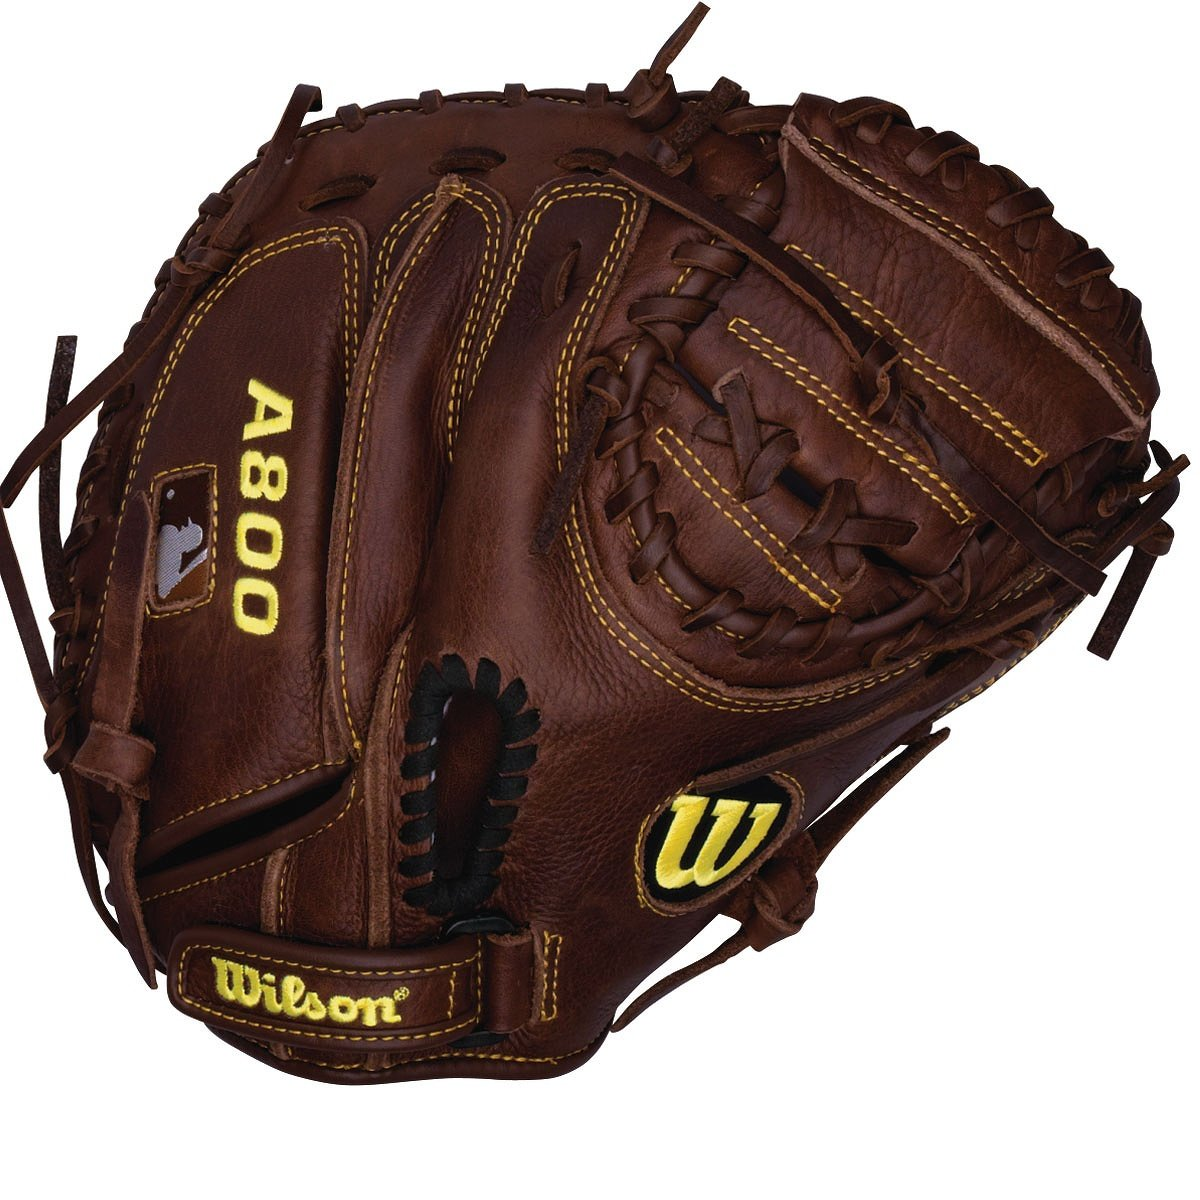 The Best Catcher's Mitt 1